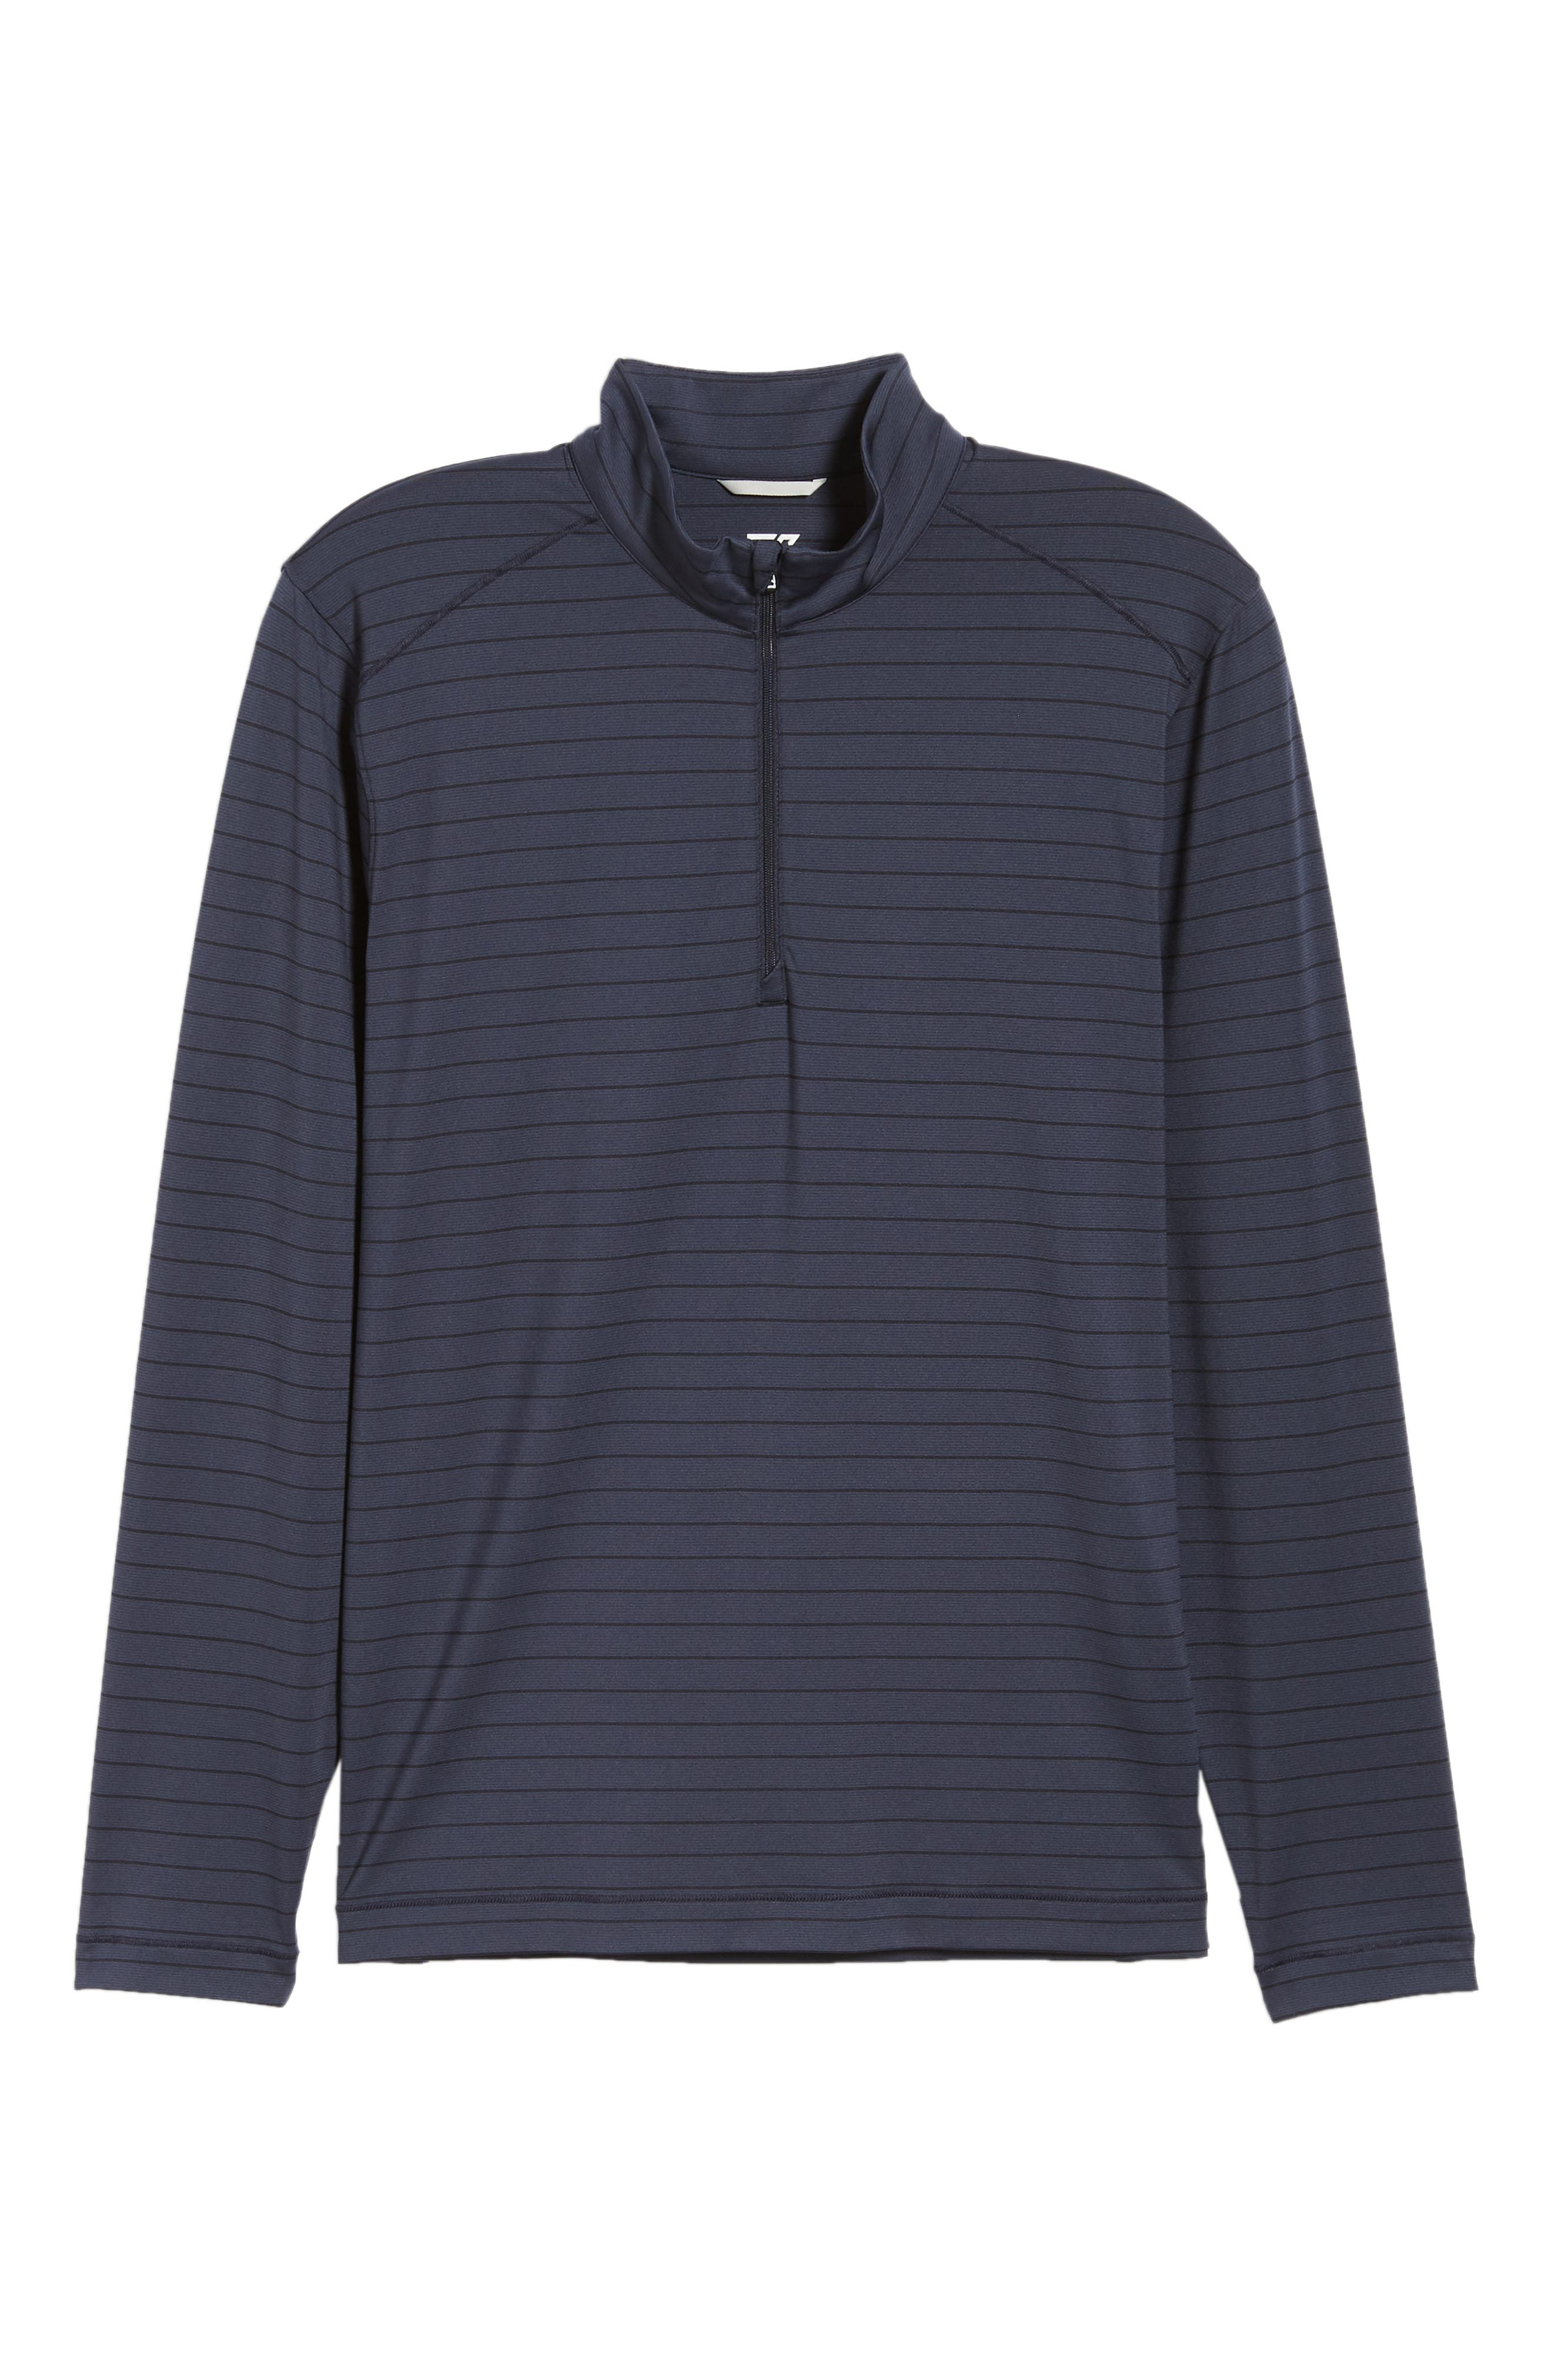 Holman Stripe Half Zip Pullover,                             Alternate thumbnail 6, color,                             LIBERTY NAVY HEATHER